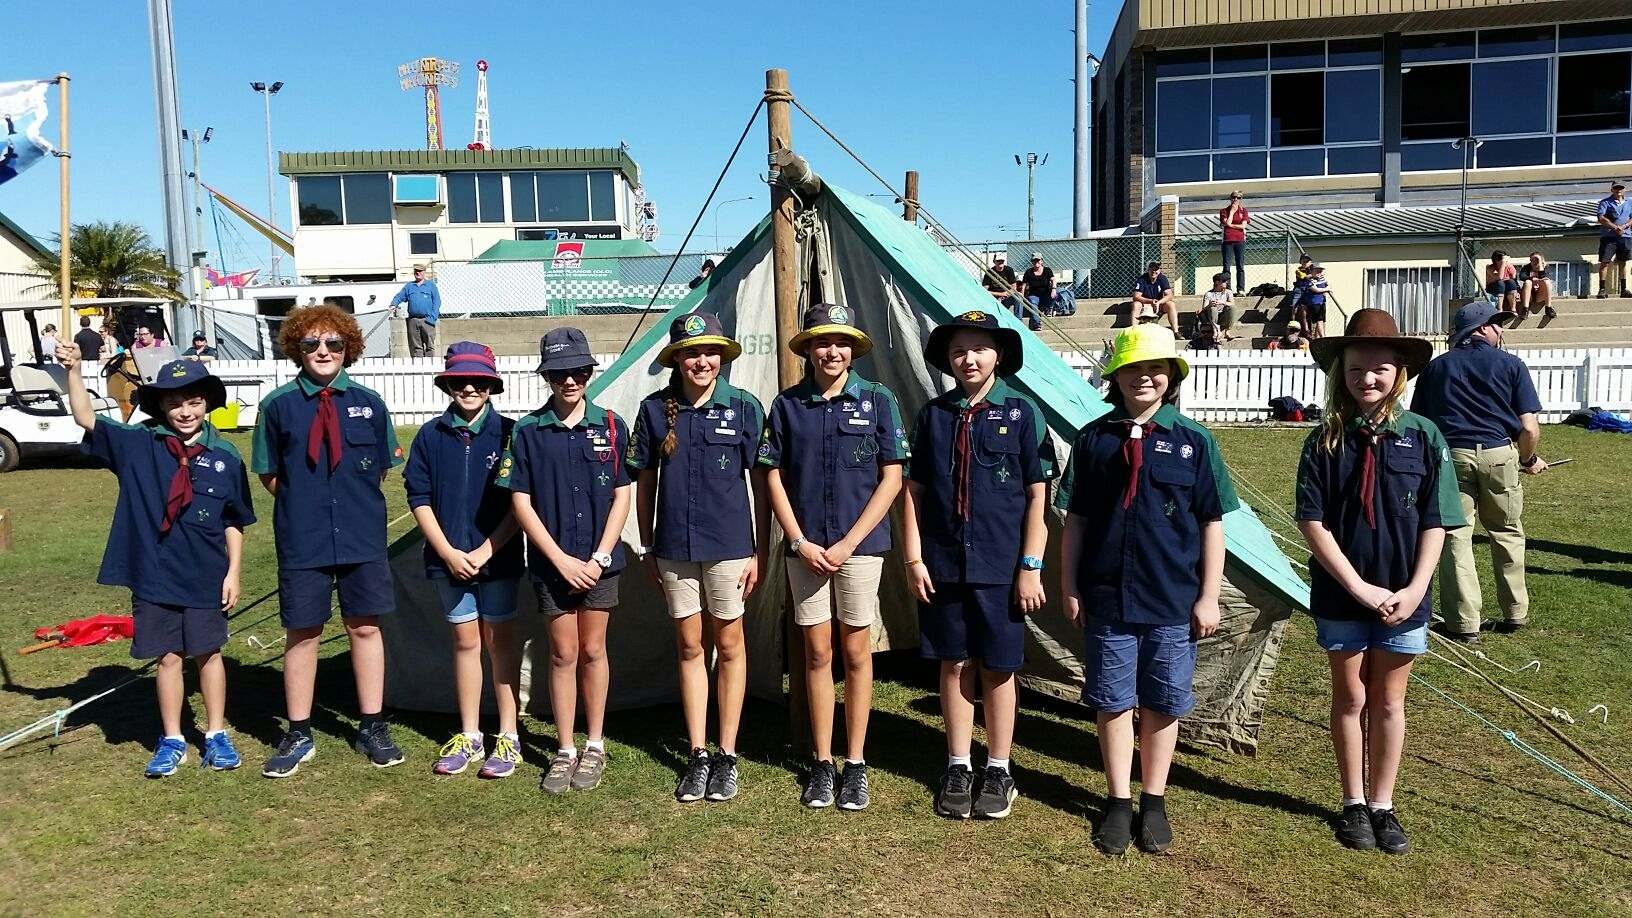 Northern Moreton Bay Region Scouts Queensland